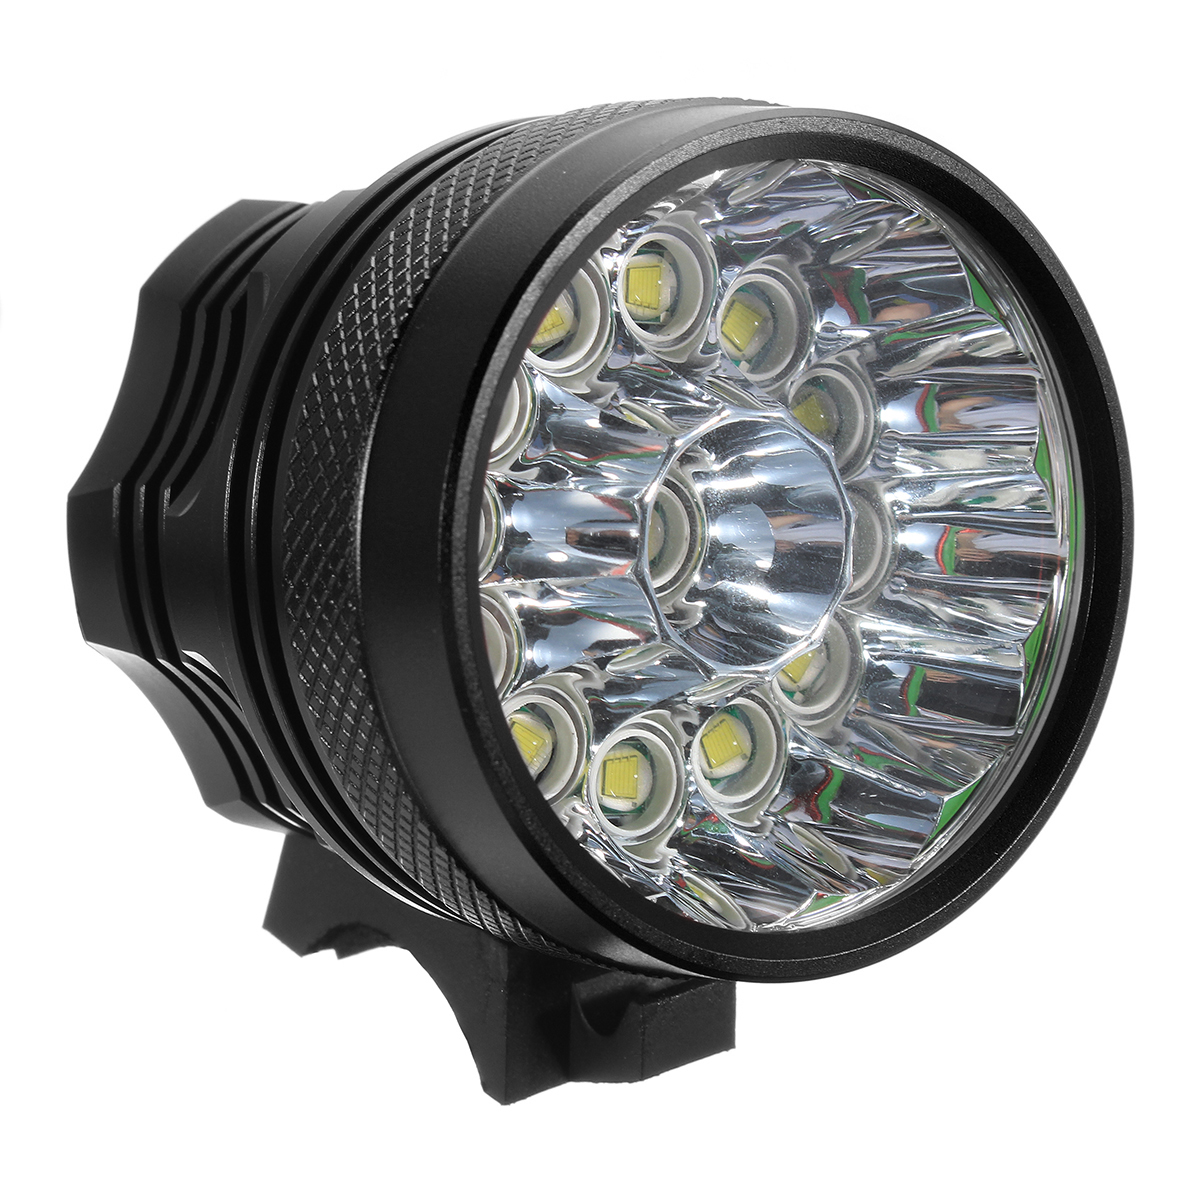 BIKIGHT 4200LM T6 13 LED Bike Front Light Bicycle HeadLight Headlamp Waterproof Set